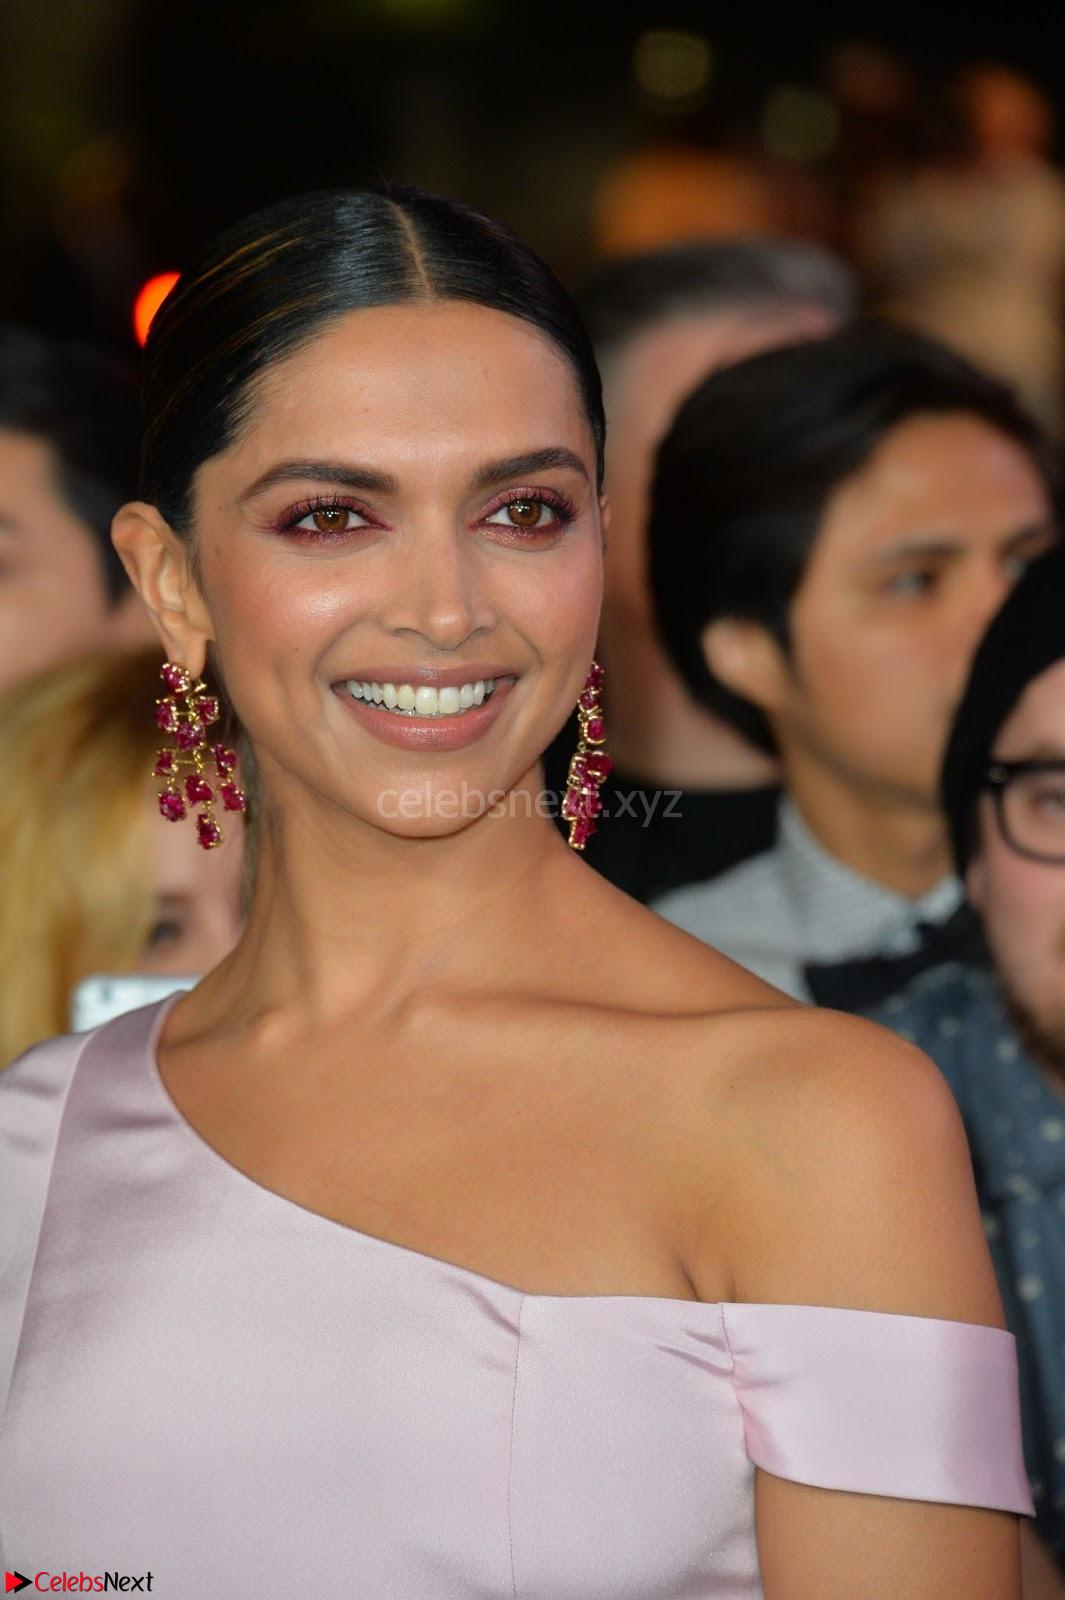 Deepika Padukone Smiling Beauty January 2018 CelebsNext Exclusive Galleries